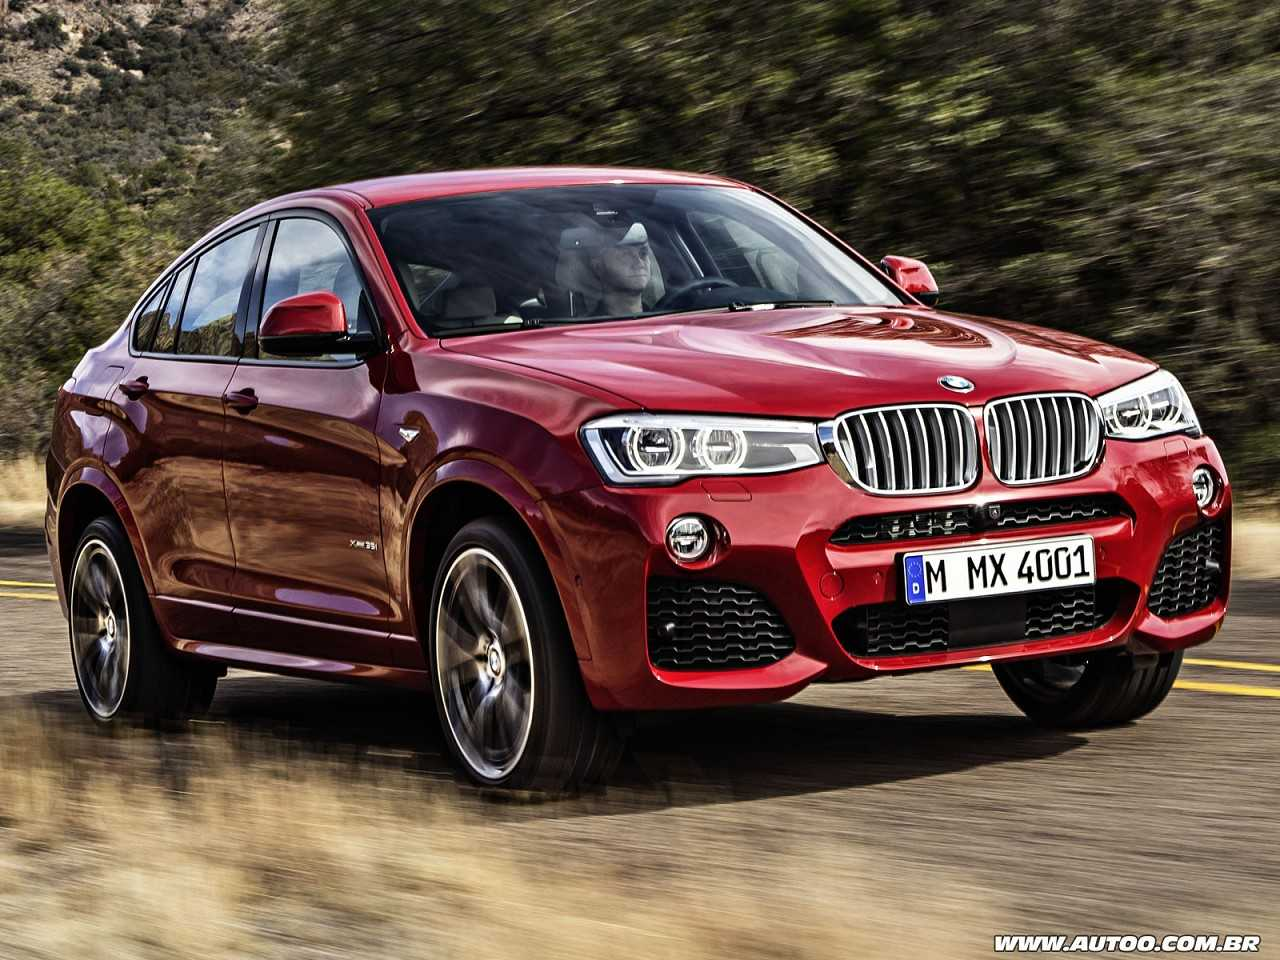 BMW X4 2014 - ângulo frontal